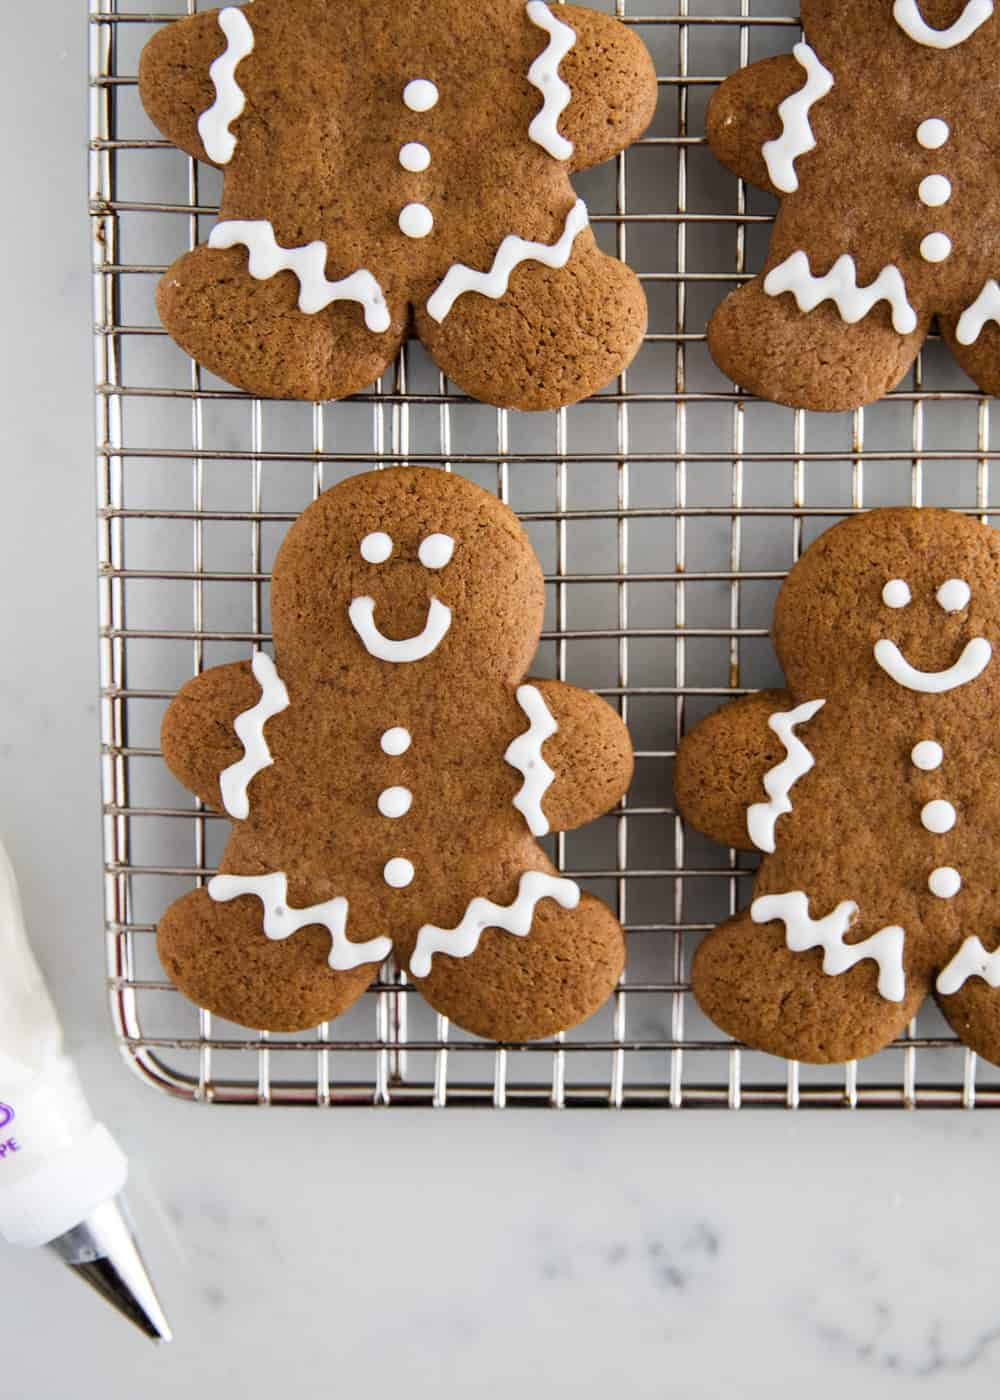 gingerbread man cookies on a cooling rack